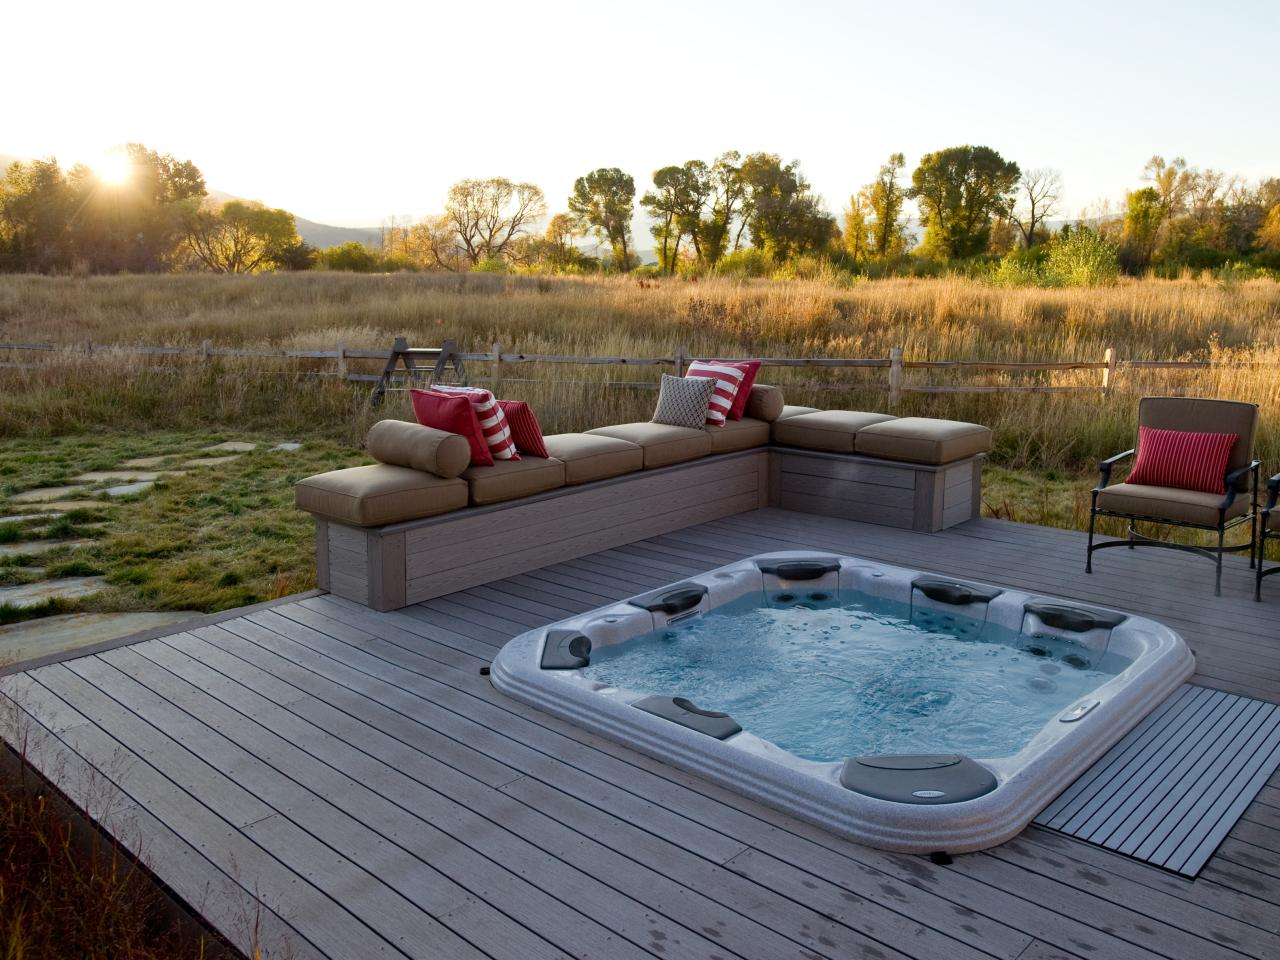 Hot tub ideas for back porch joy studio design gallery - Jacuzzi pour jardin ...